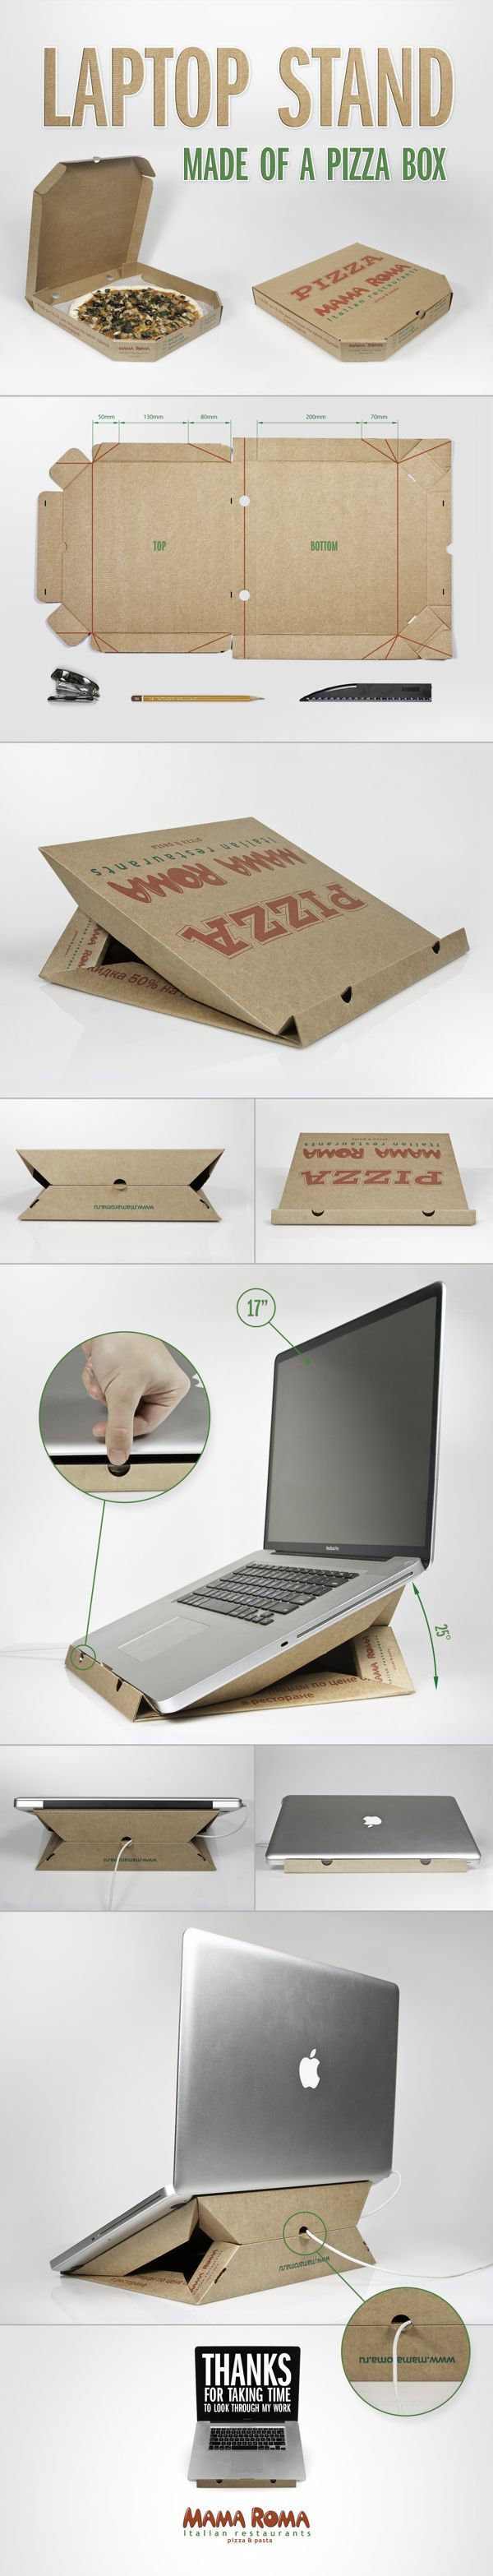 Conceived by Ilya Andreev, a graphic designer based in Russia, the Pizza Box Laptop Stand uses a standard cardboard takeout box.